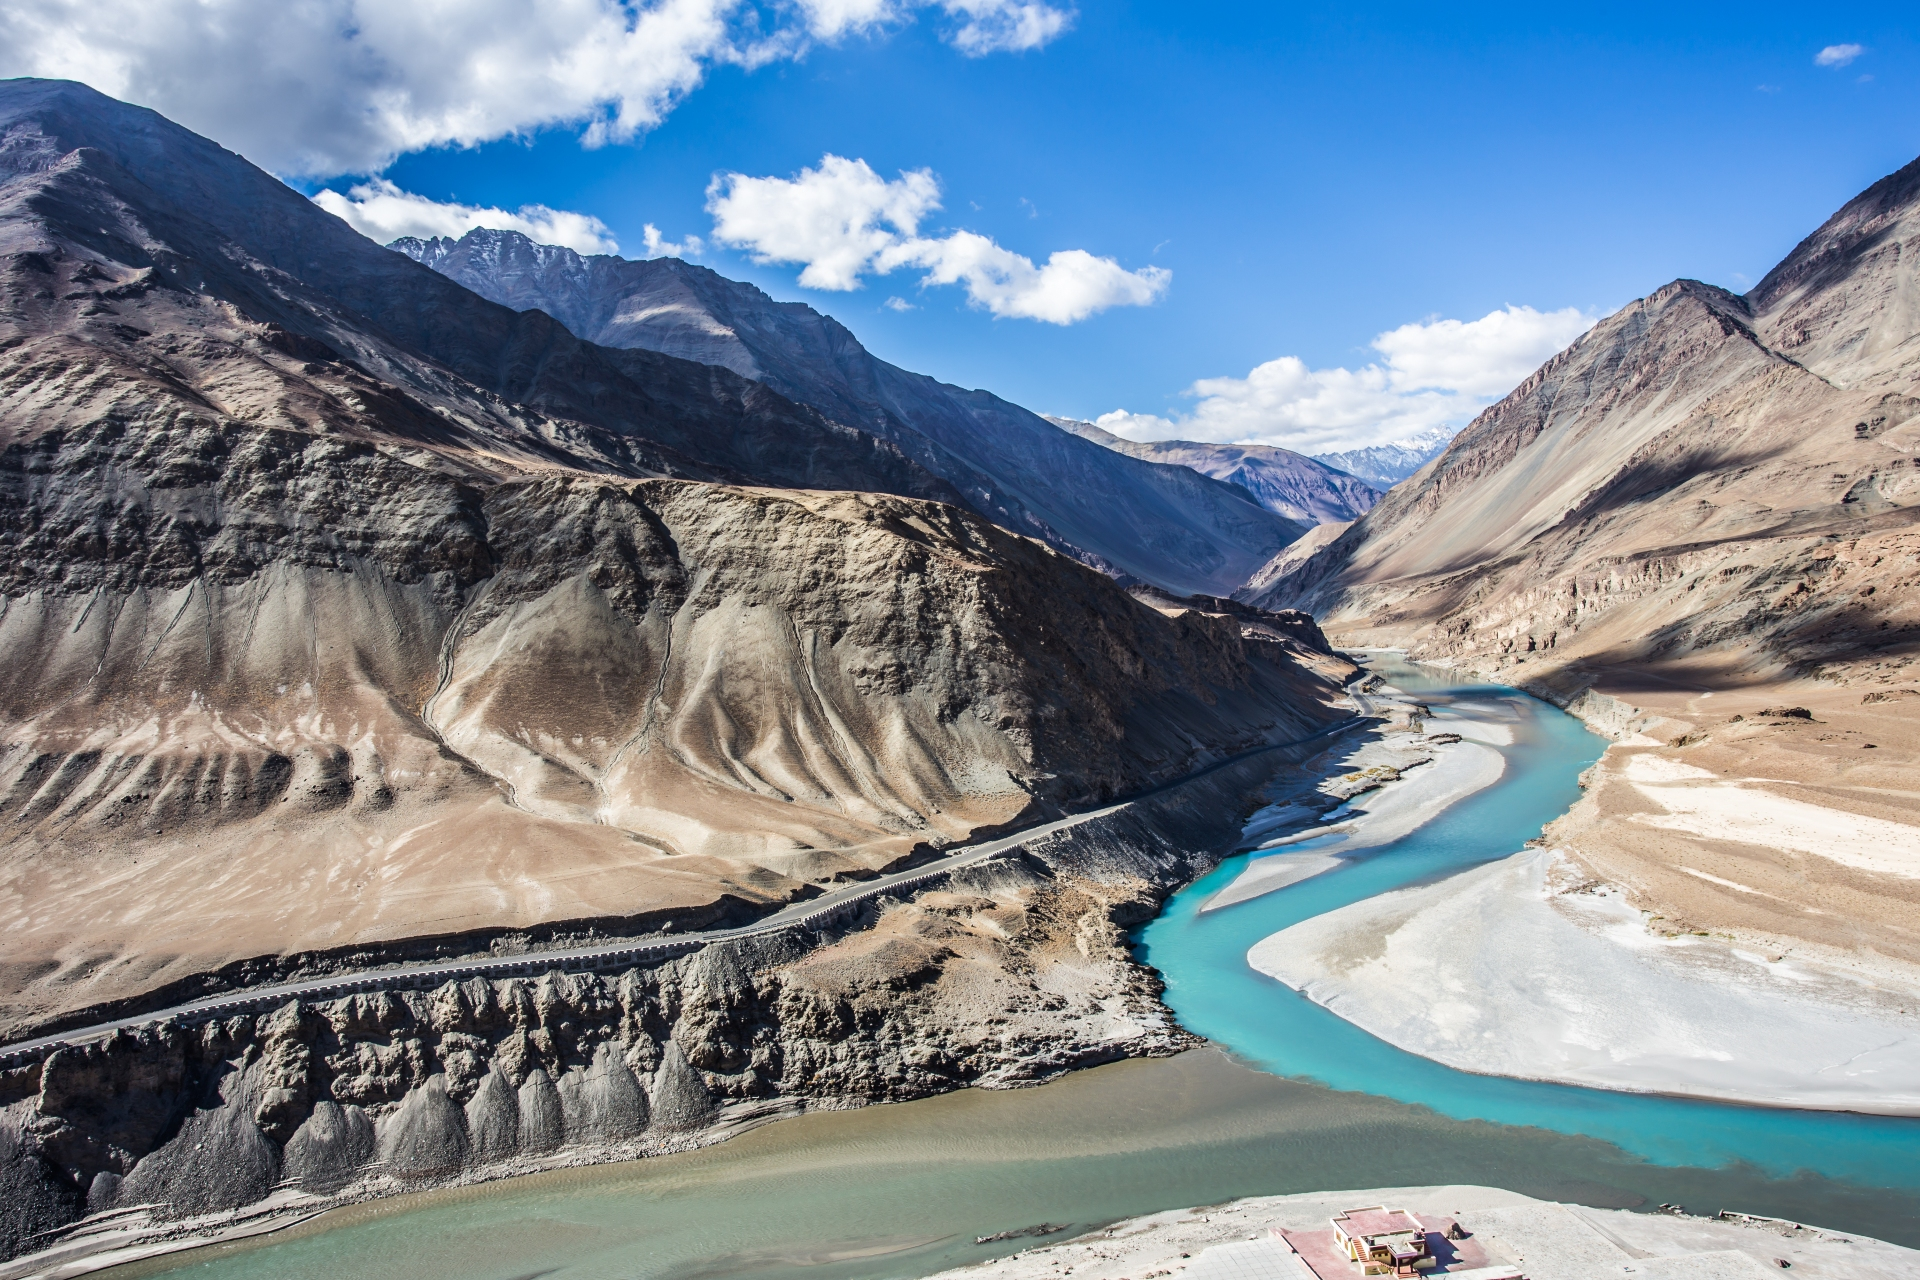 In the beautiful Nimmu valley, the Zanskar river meets and feeds Ladakh's lifeline, the Indus river. Photo: Pawika Tongtavee/Shutterstock